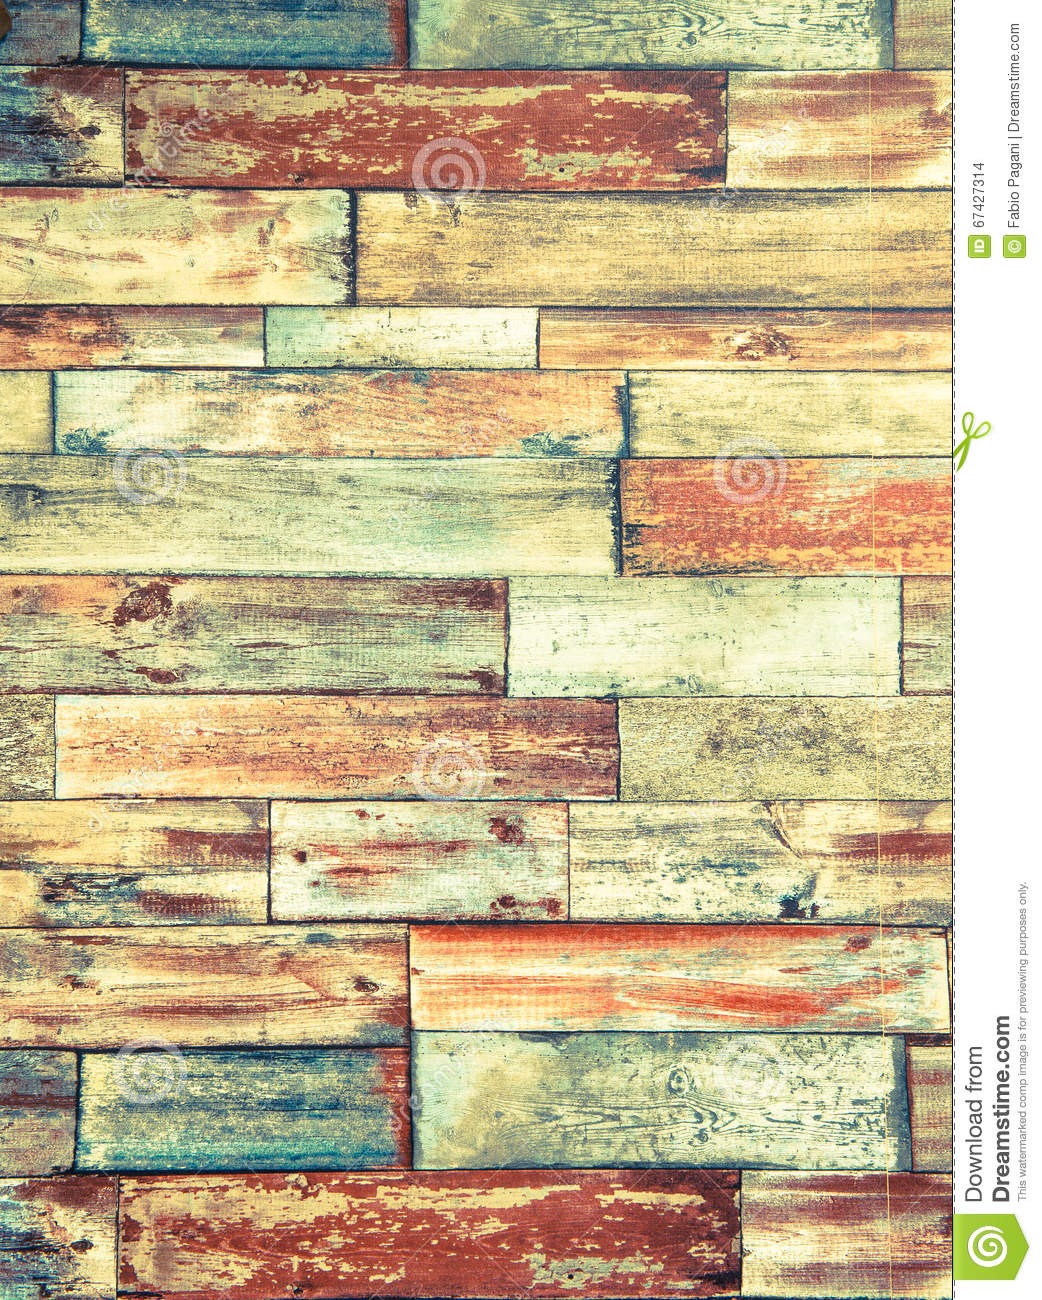 Vertical Frame Of Psychedelic Colorful Brick Wall Background Stock ...